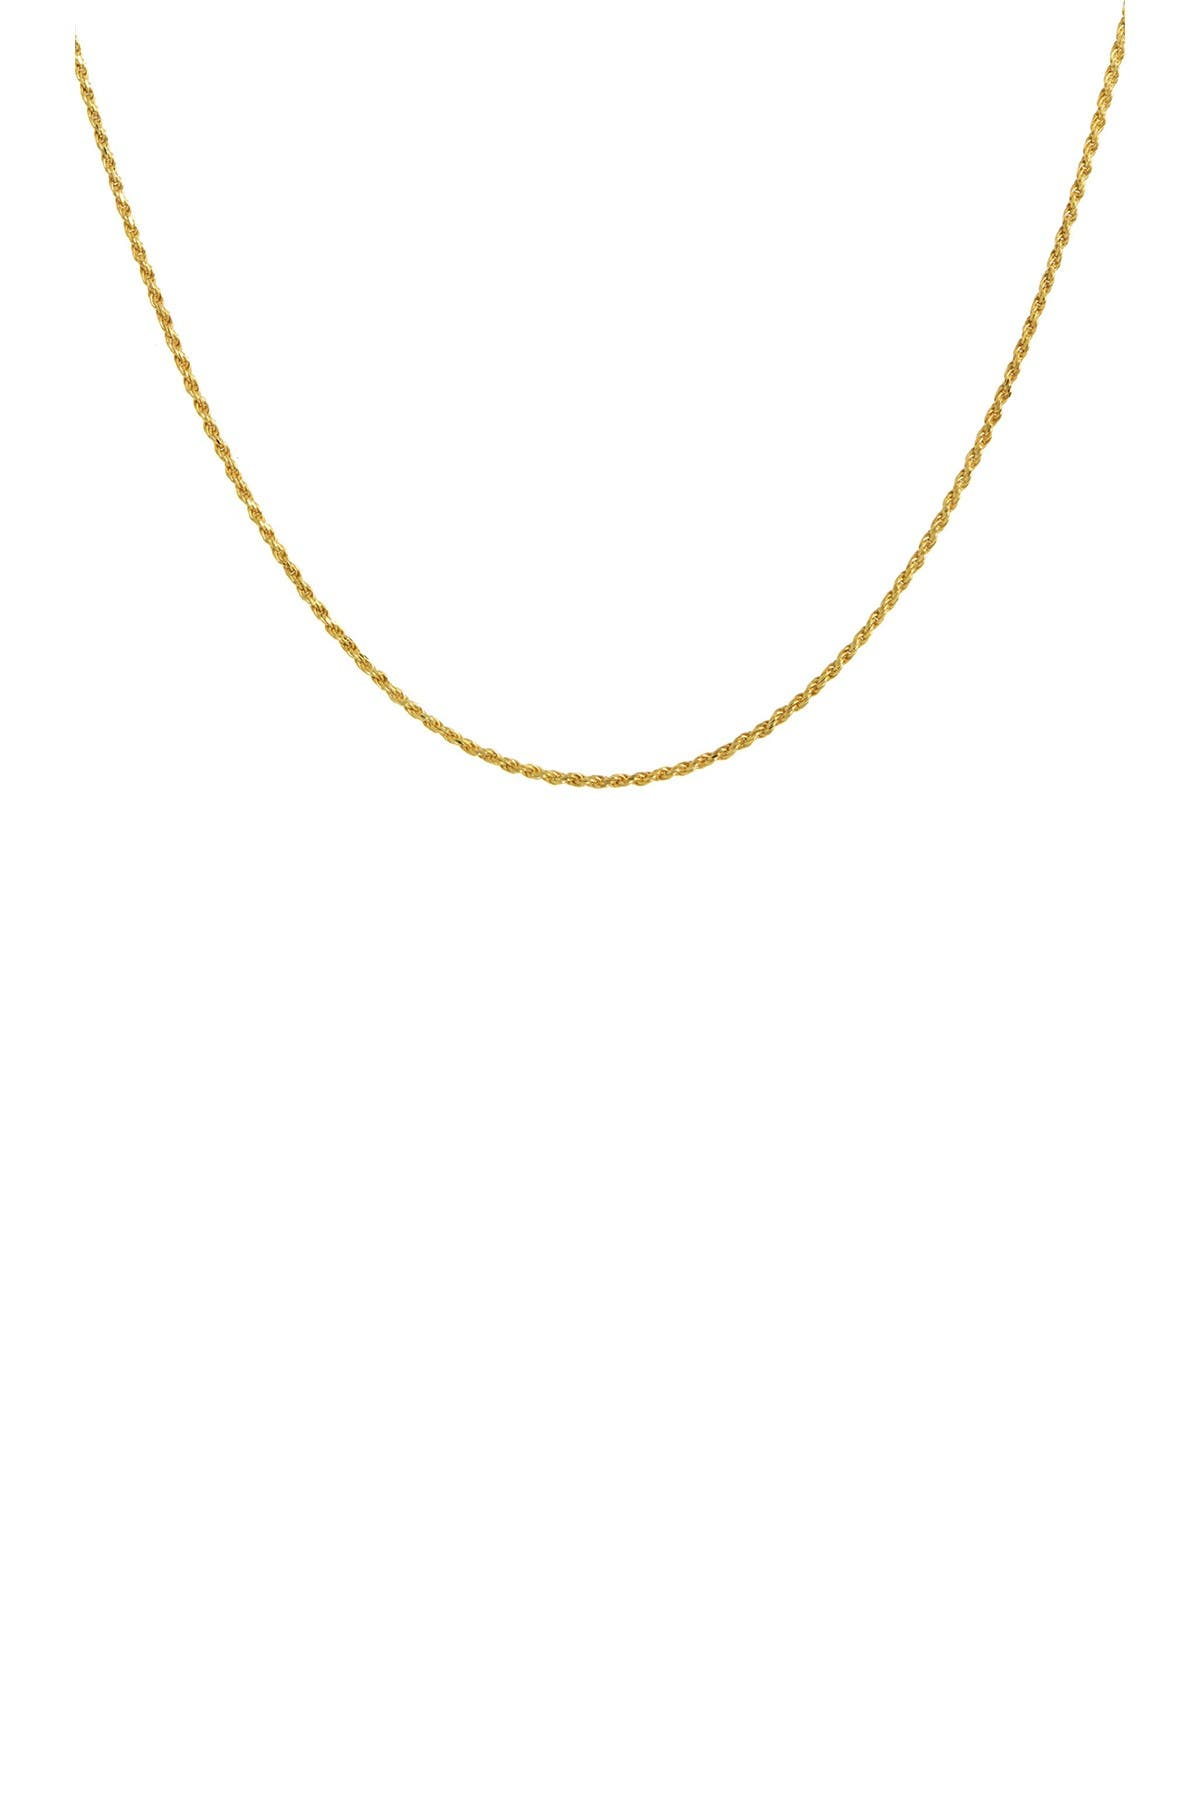 Image of Savvy Cie 18K Yellow Gold Vermeil Italian Rope Chain Necklace